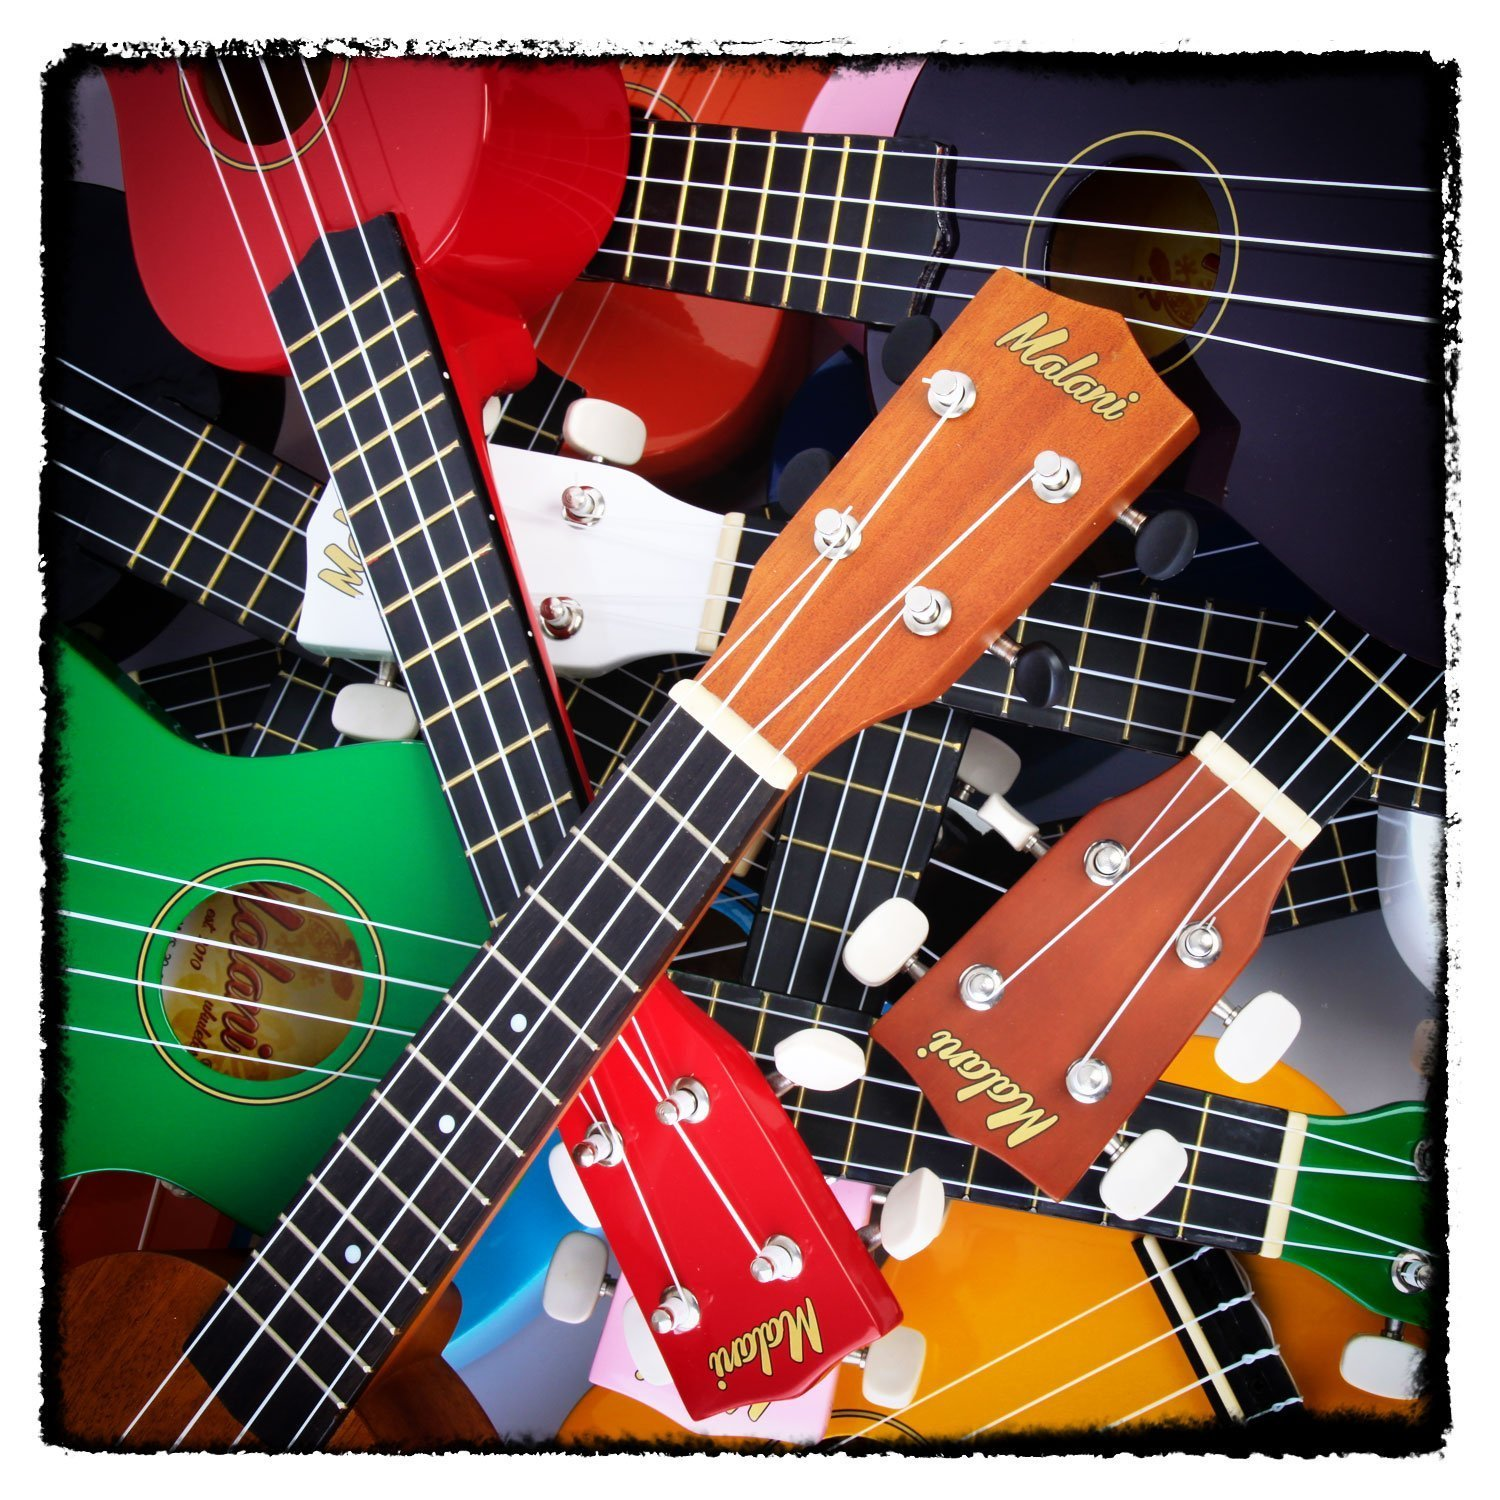 best black soprano ukulele with bag great fun for ***** beginners